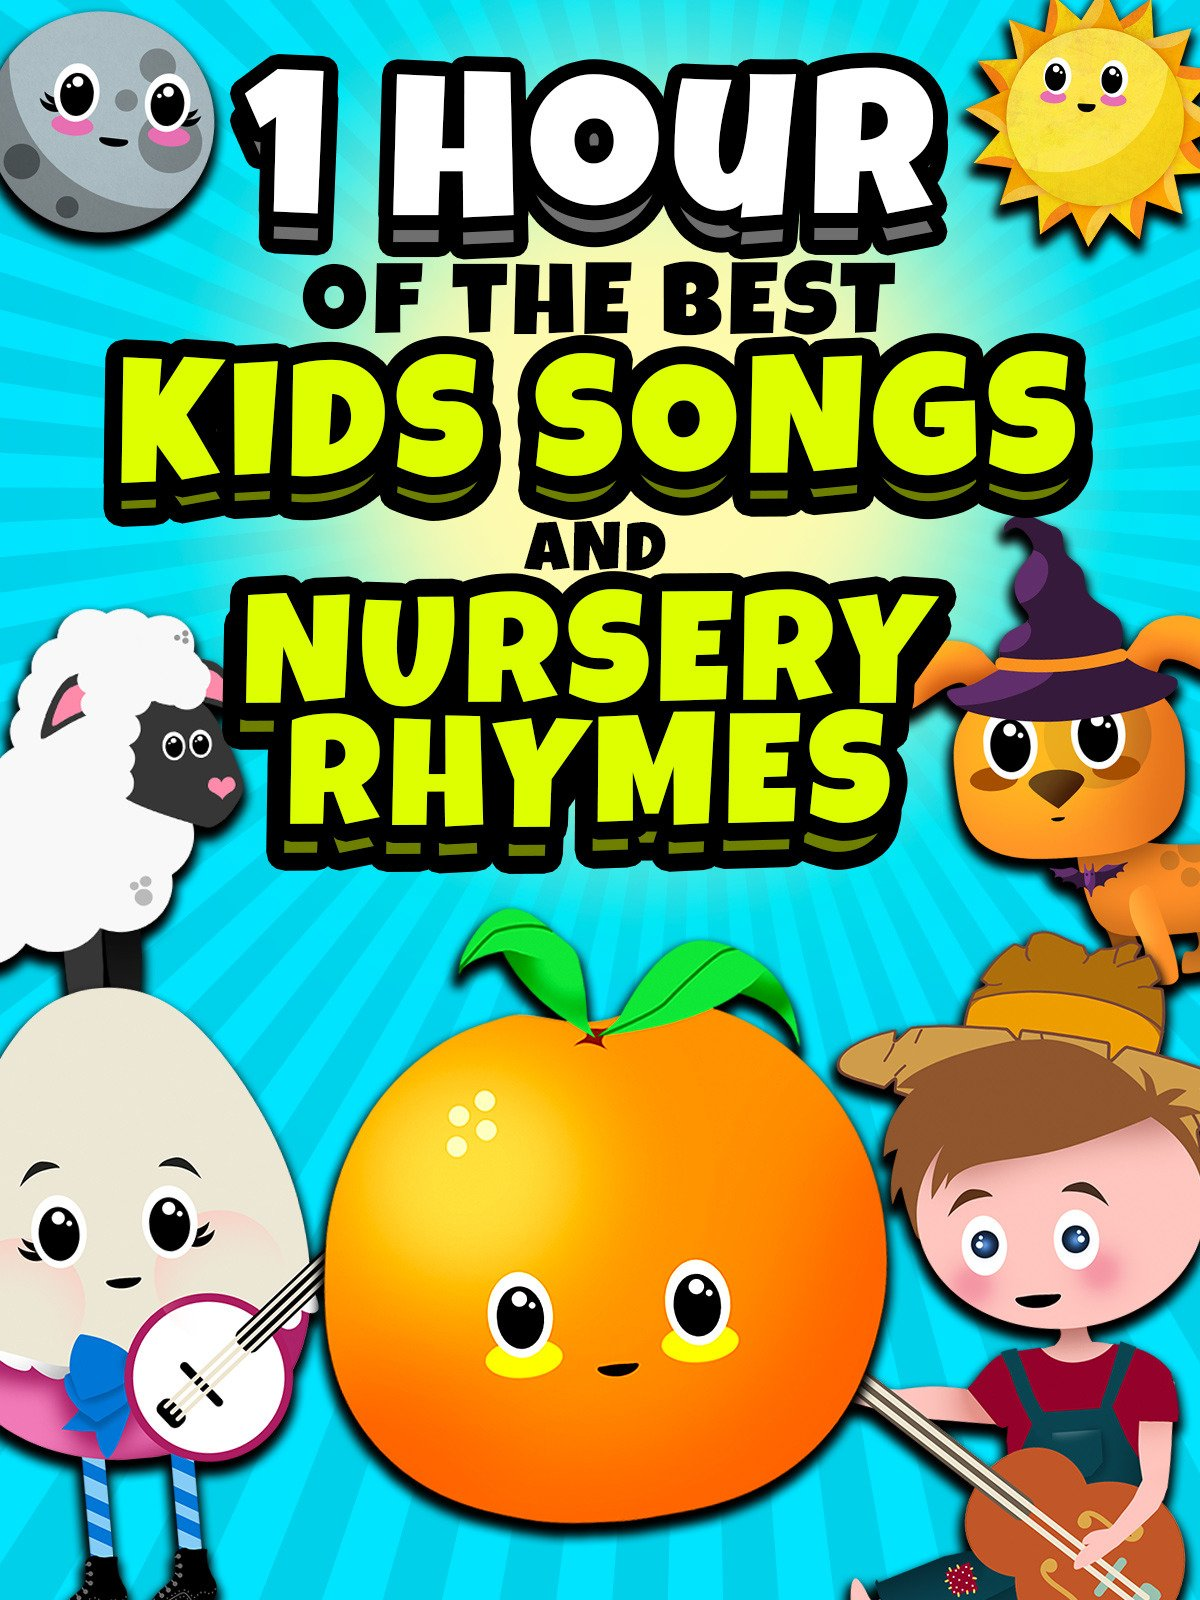 1 Hour of the Best Kids Songs and Nursery Rhymes! on Amazon Prime Video UK